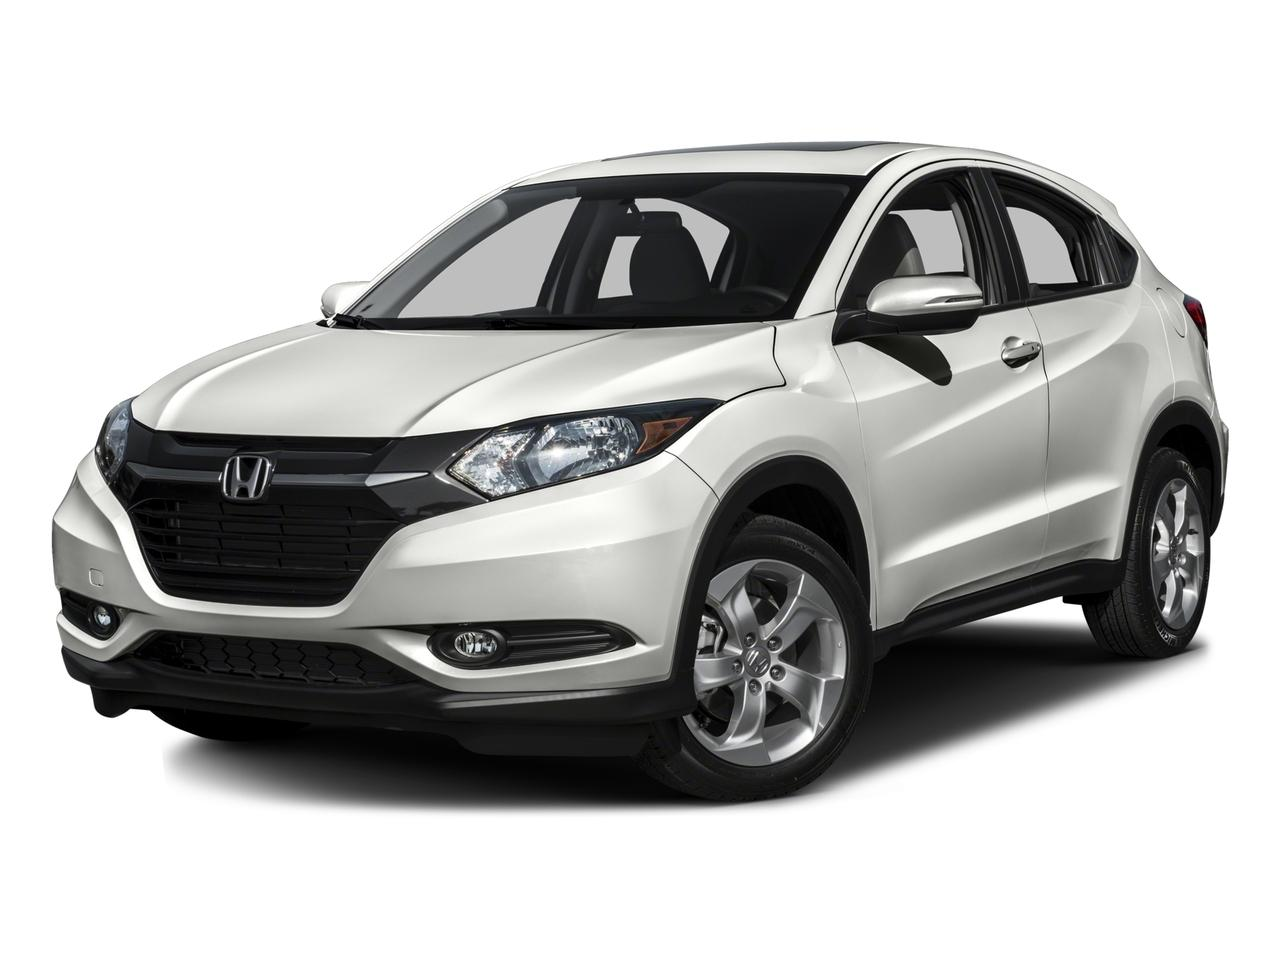 2016 Honda HR-V Vehicle Photo in Gulfport, MS 39503